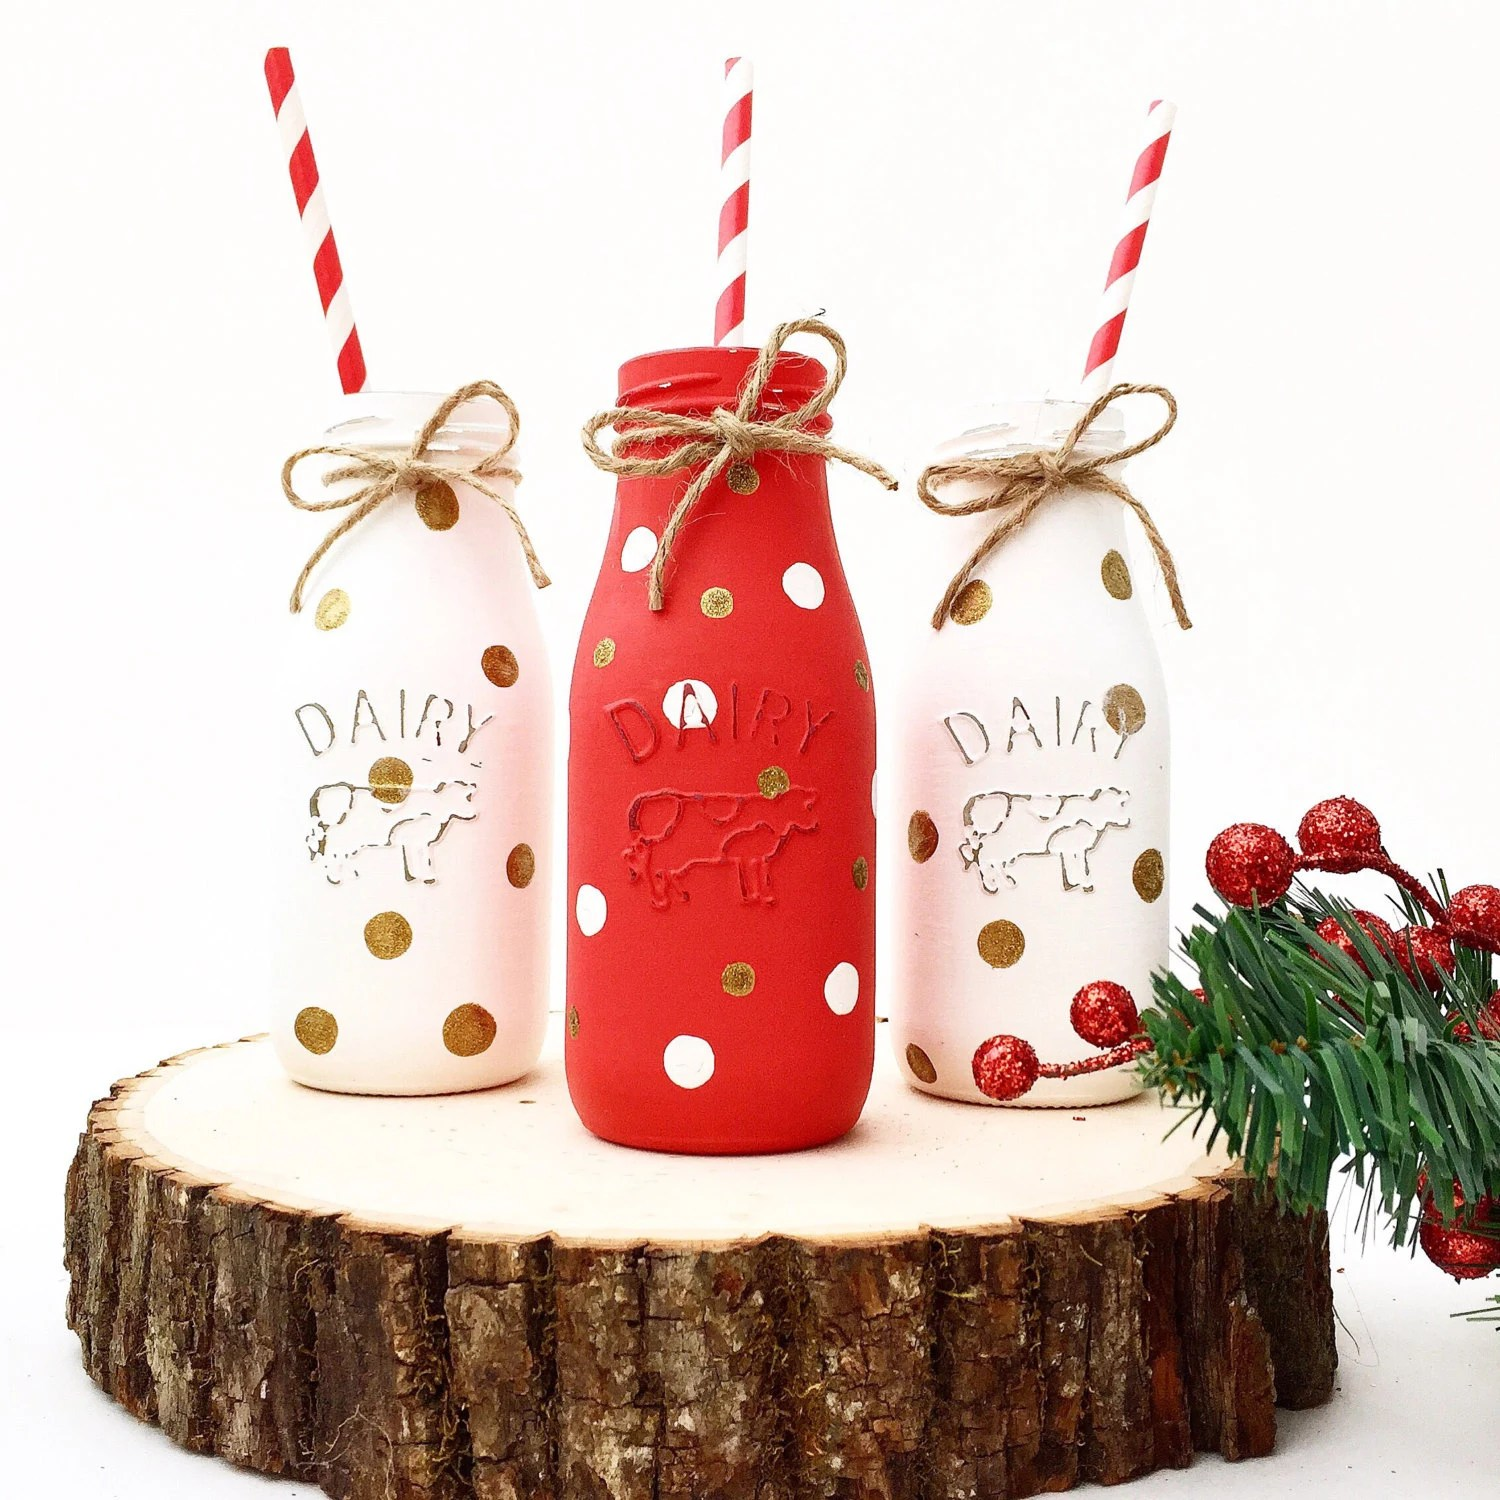 Milk Bottles For Decoration Santas Milk Bottles Rustic Farmhouse Christmas Decor Christmas Mantel Holiday Centerpiece Santas Milk Rustic Christmas Milk Cookies